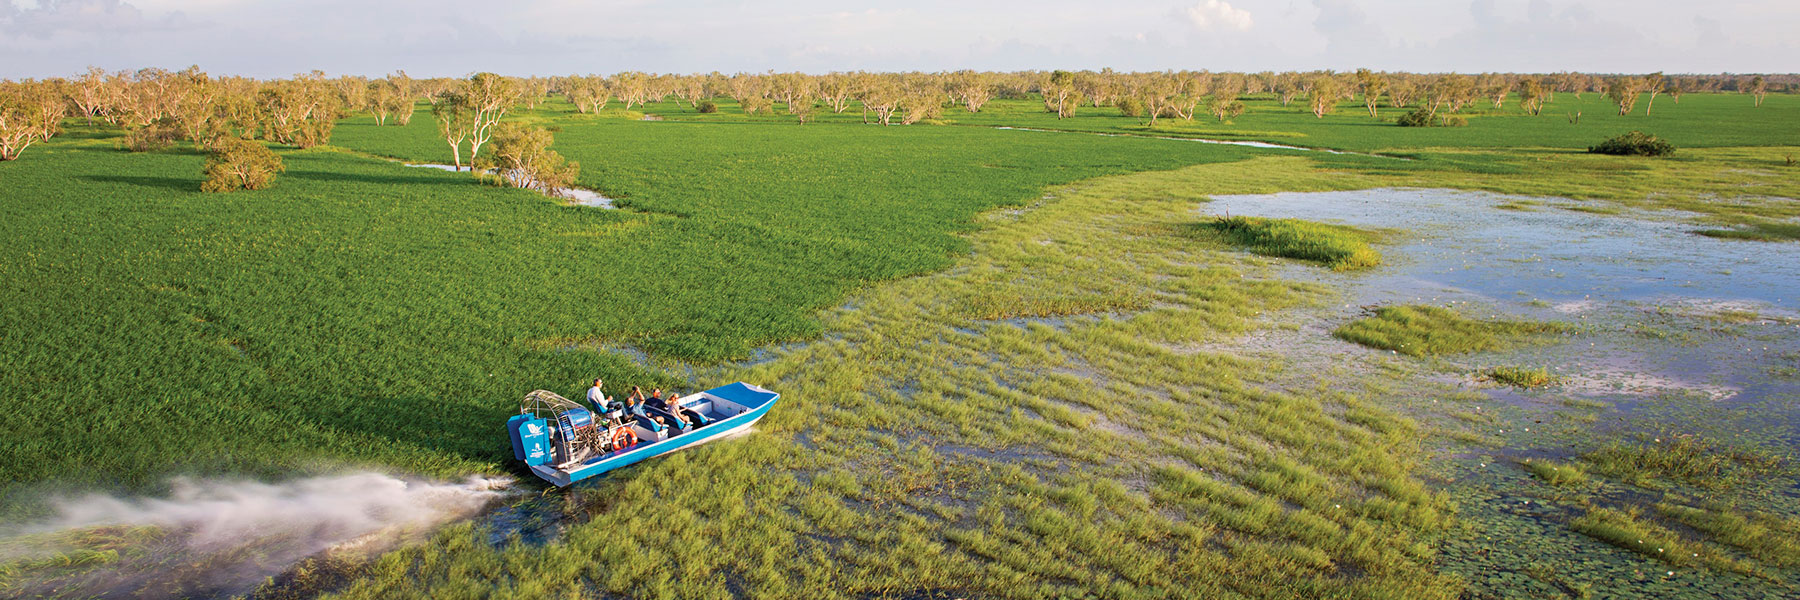 Unleash your sense of adventure with an airboat safari at Wildman Wilderness Lodge!